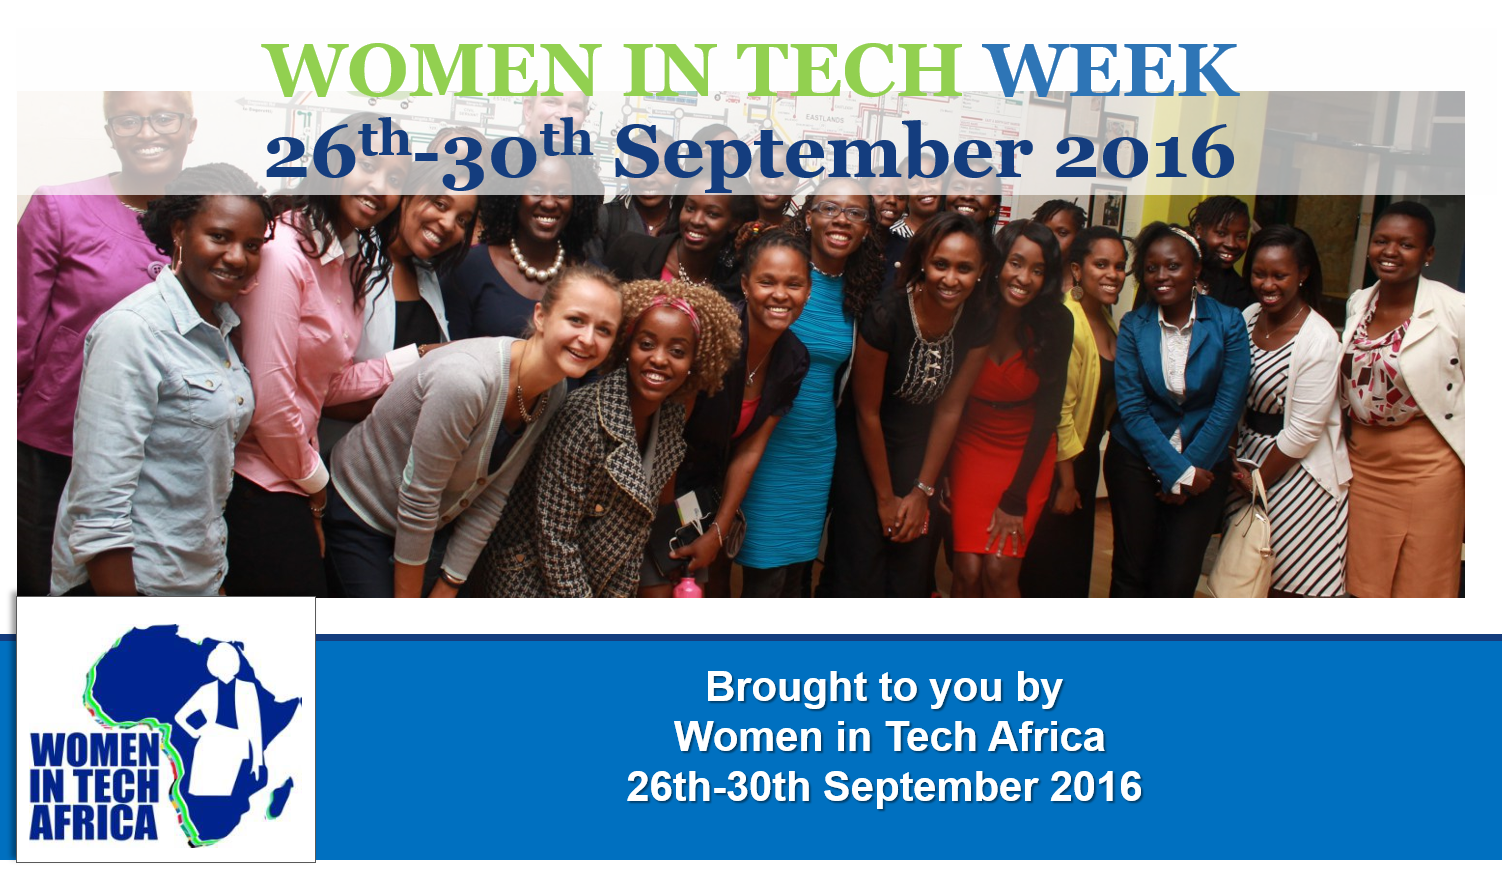 Women in Tech Week